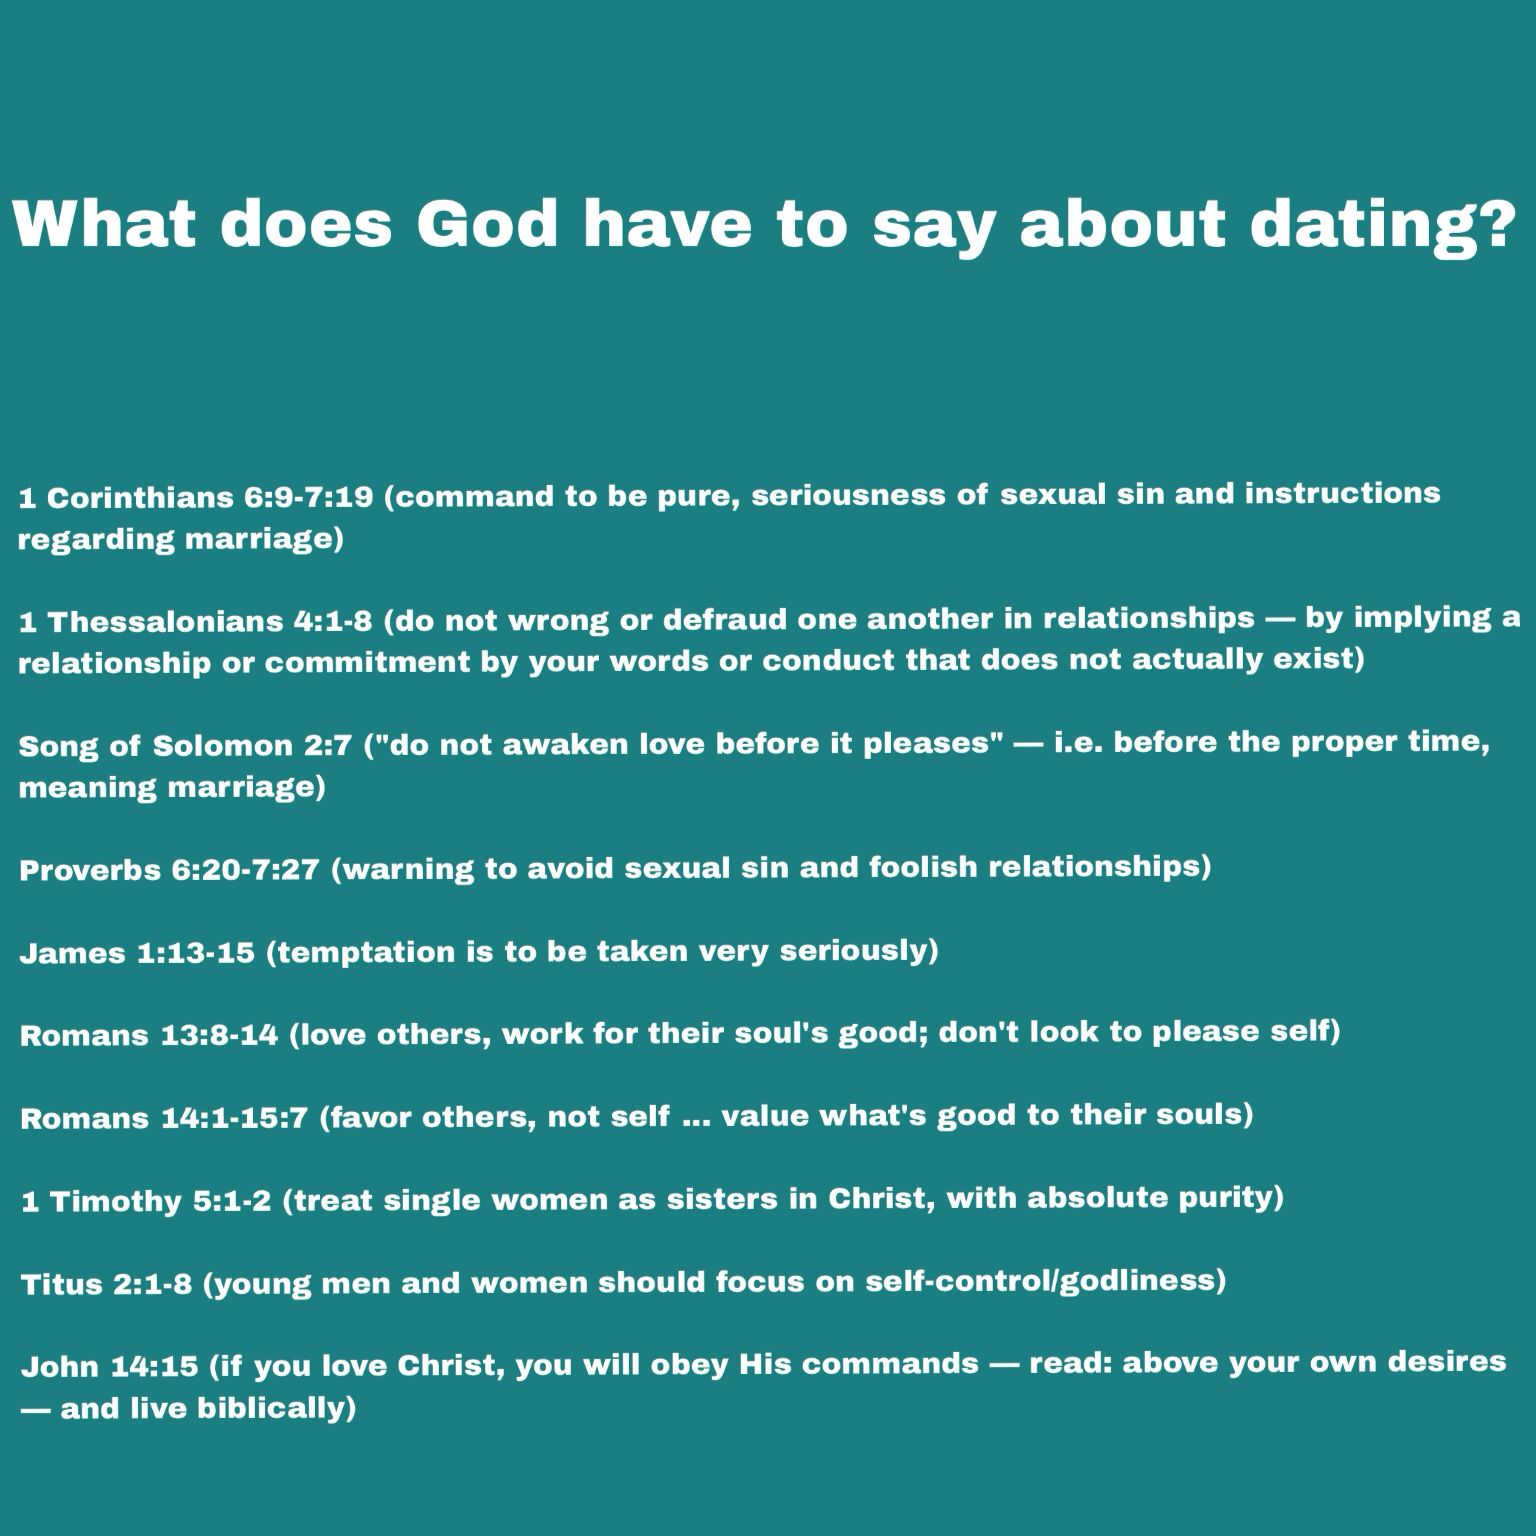 Christian dating advice real life